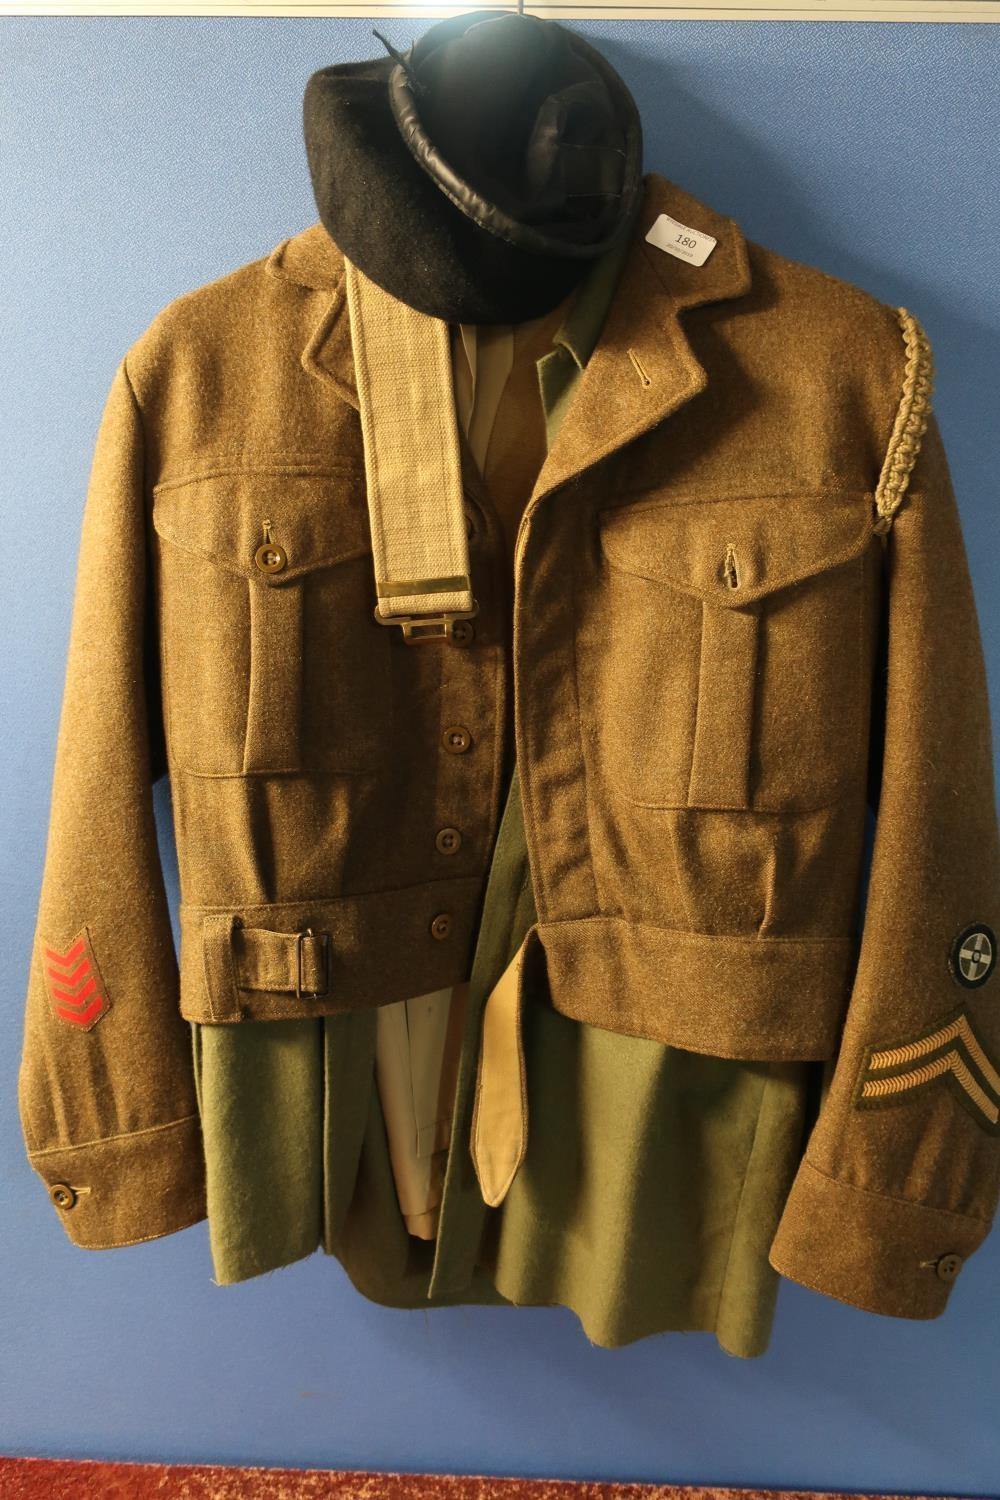 Lot 31 - British Army uniform comprising of shirts, over shirt and battle dress blouse 1949 pattern dated